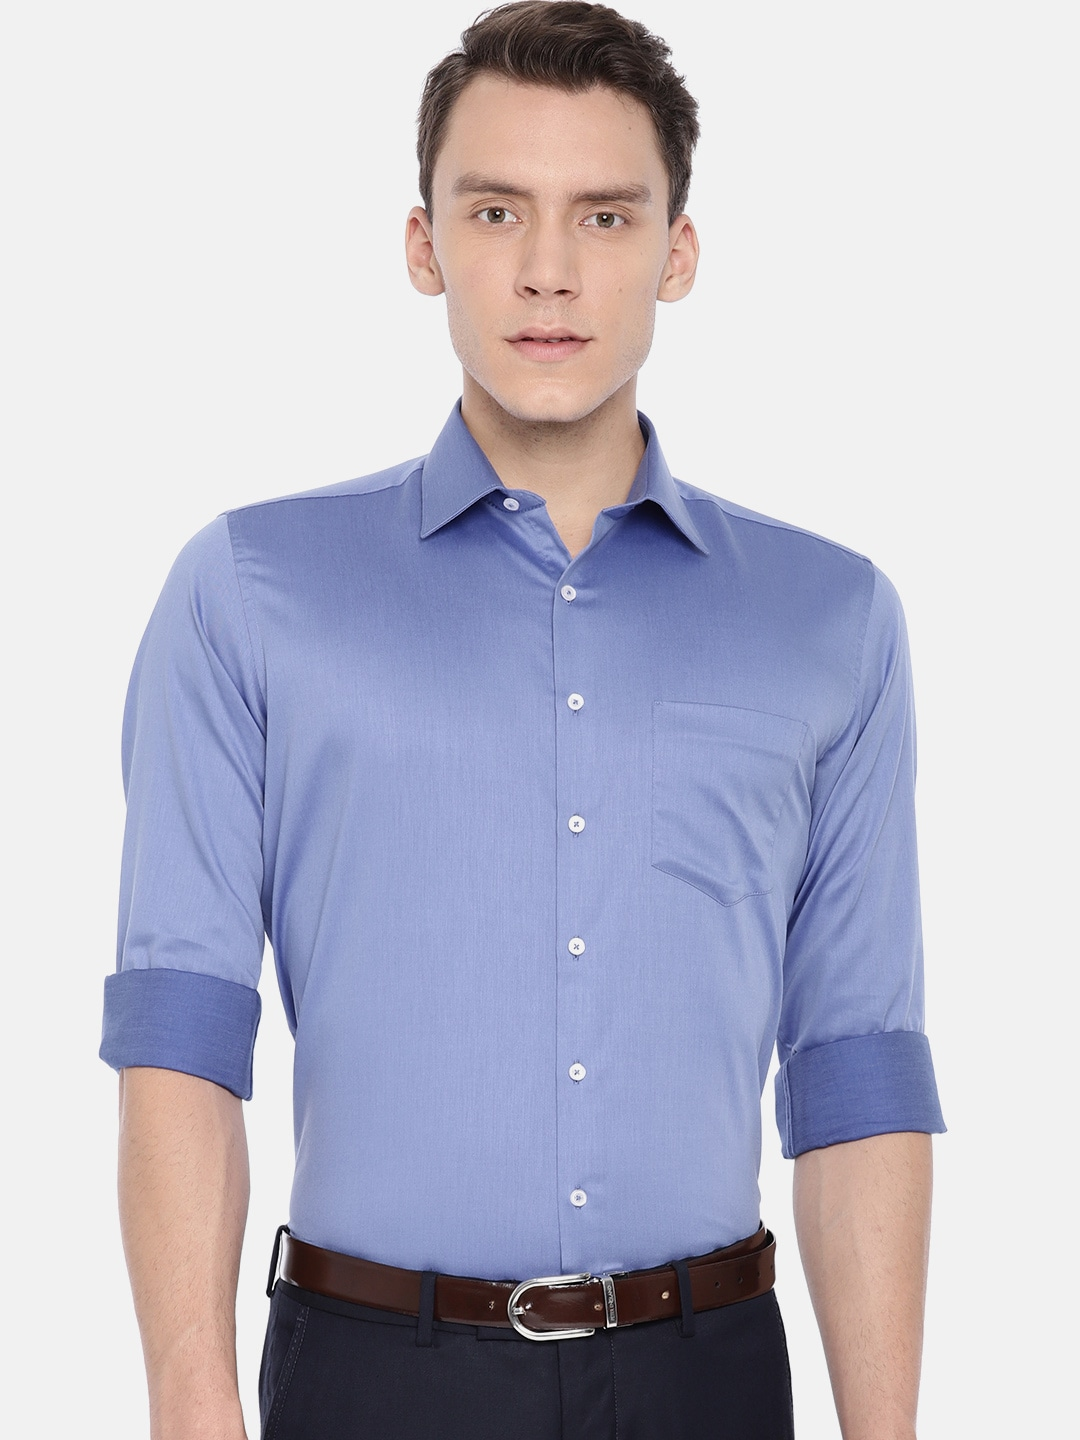 510ccce9157 Slim Fit Formal Shirts - Buy Slim Fit Formal Shirts online in India